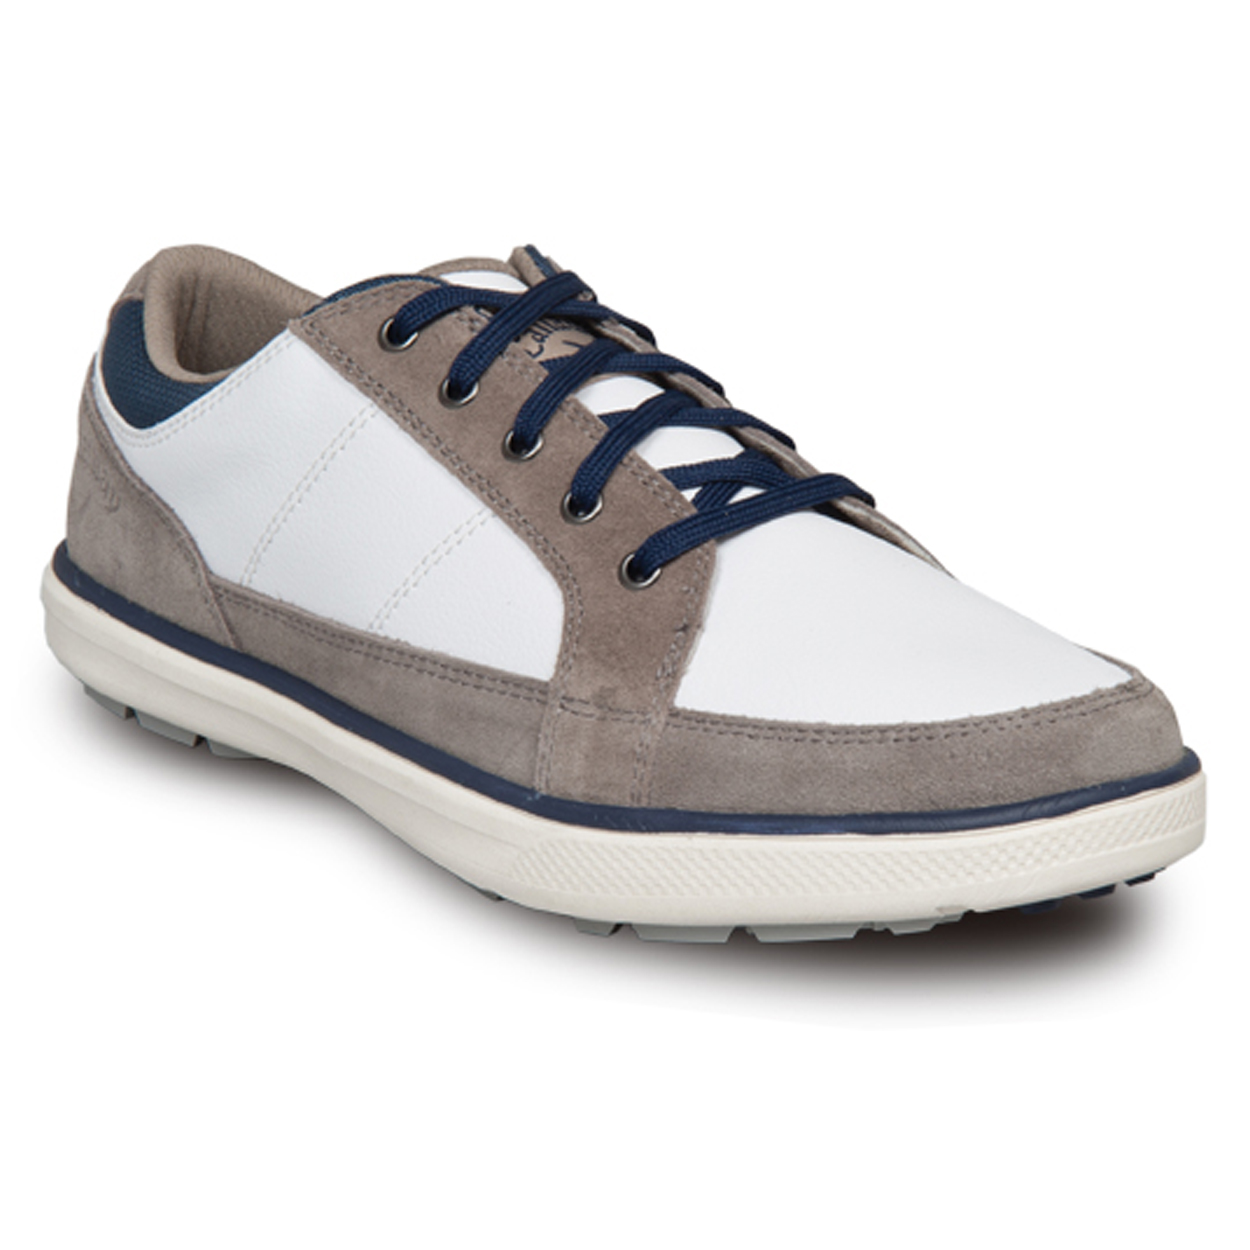 callaway mar sport s leather spikeless golf shoe